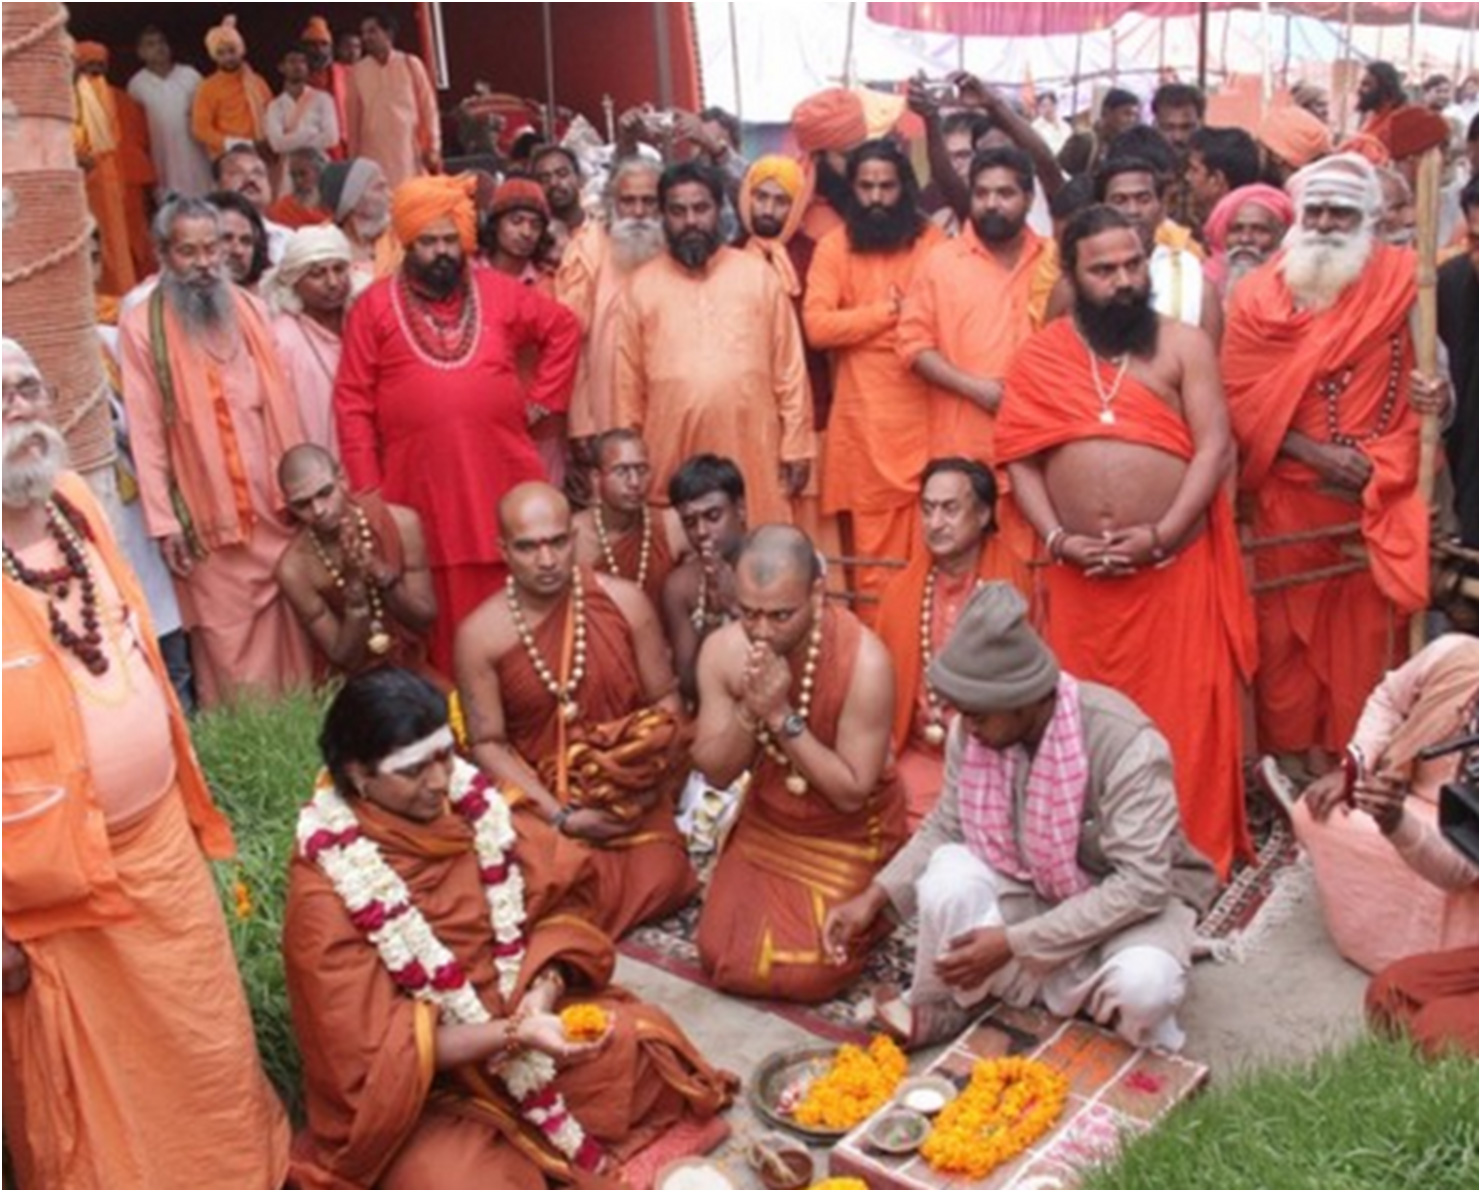 A powerful spiritual leader and reviver of the Vedic tradition, here Swamiji is performing Puja, an ancient ritual to connect with the Divine